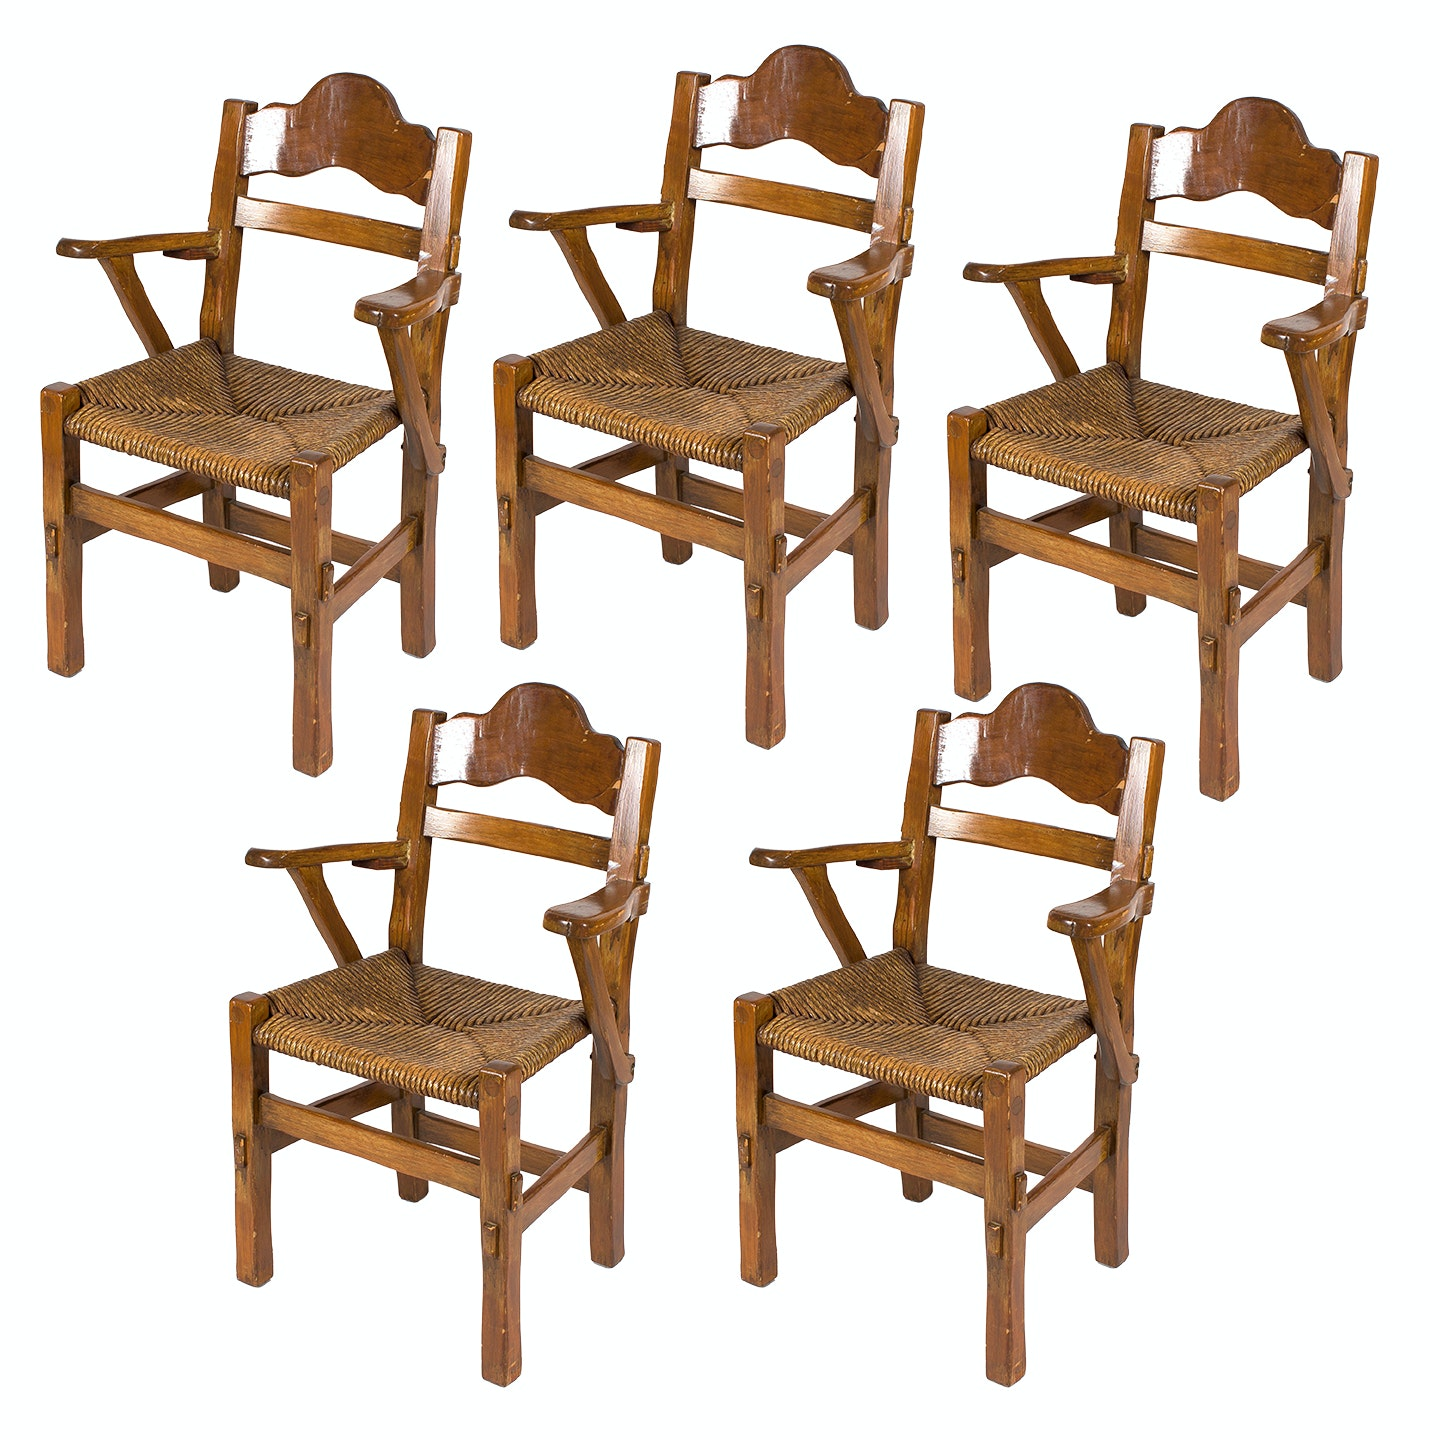 Five Vintage Chairs with Woven Seats